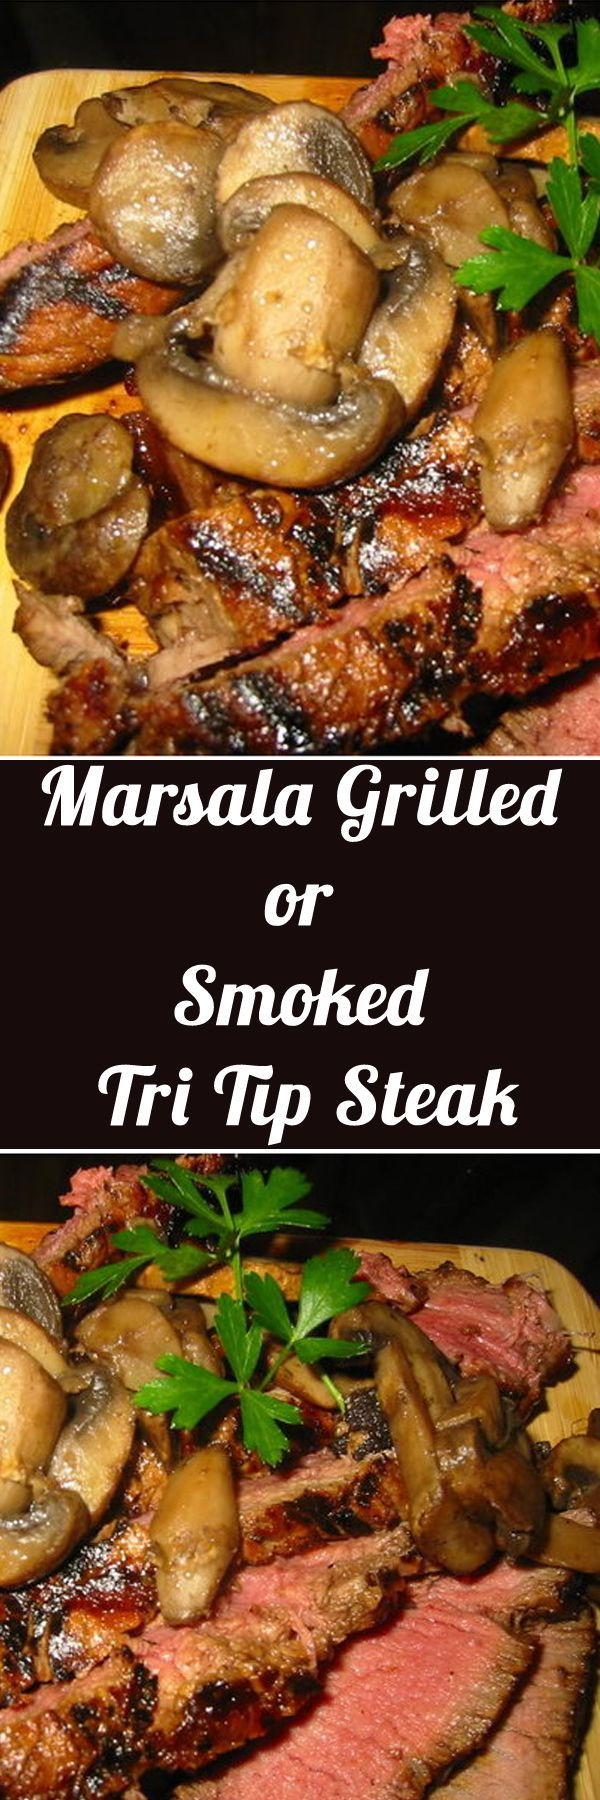 Marsala Grilled or Smoked Tri Tip Steak. For more info, please visit http://www.recipezazz.com/